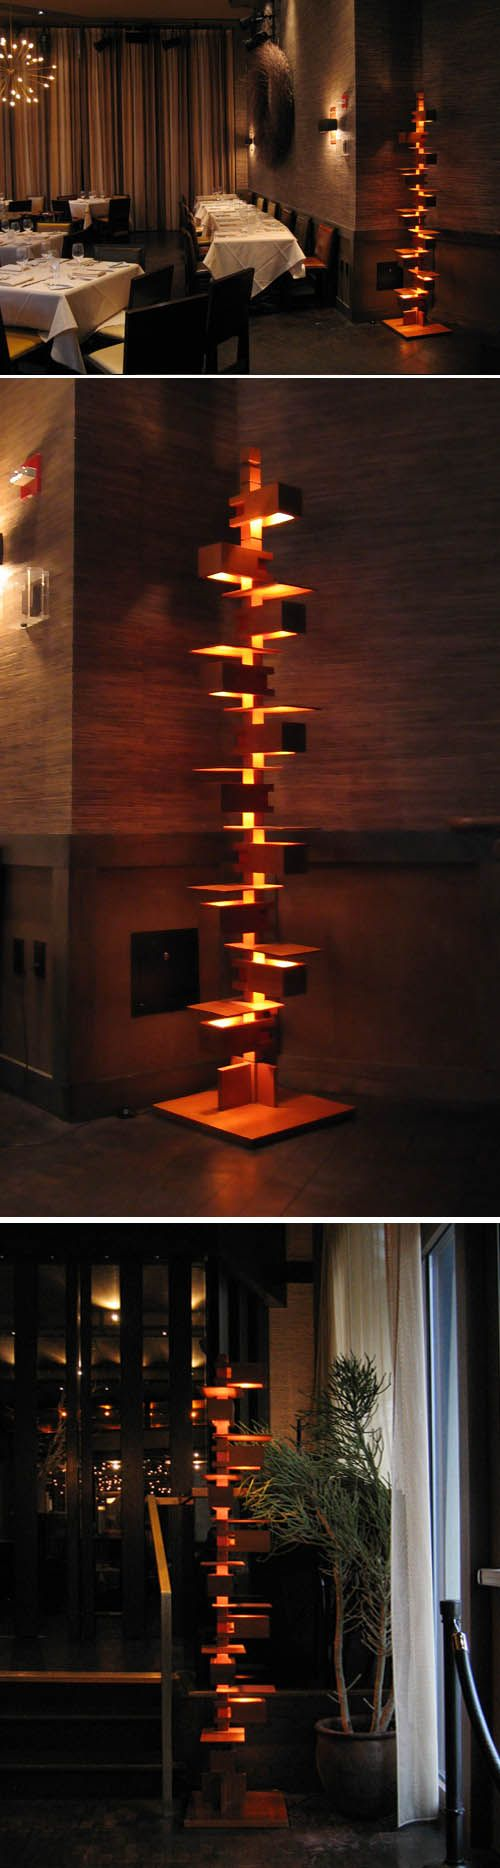 928 best dream light u0026 fire images on pinterest lights box and